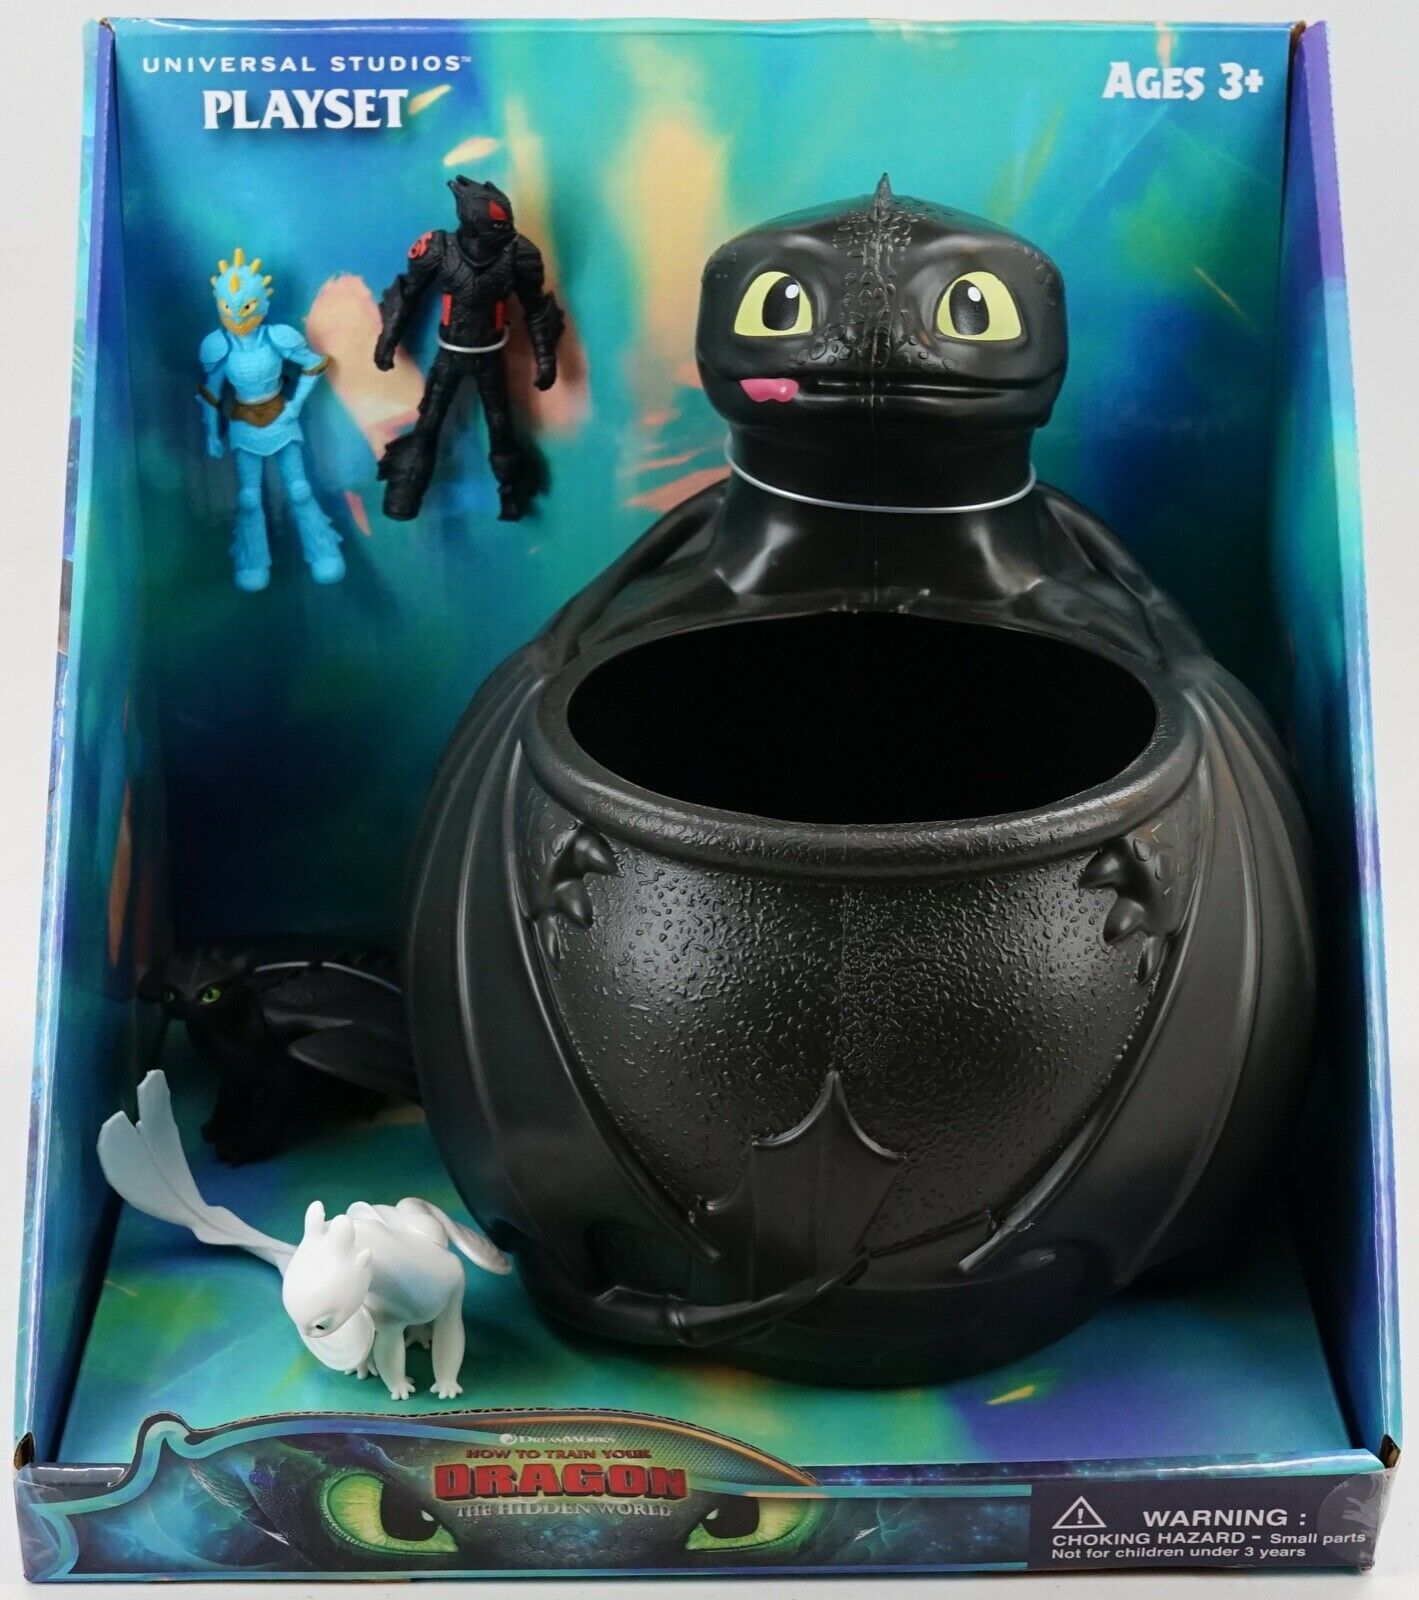 NEW Universal Dreamworks How To Train Your Dragon 3 Toothless Light Fury Playset